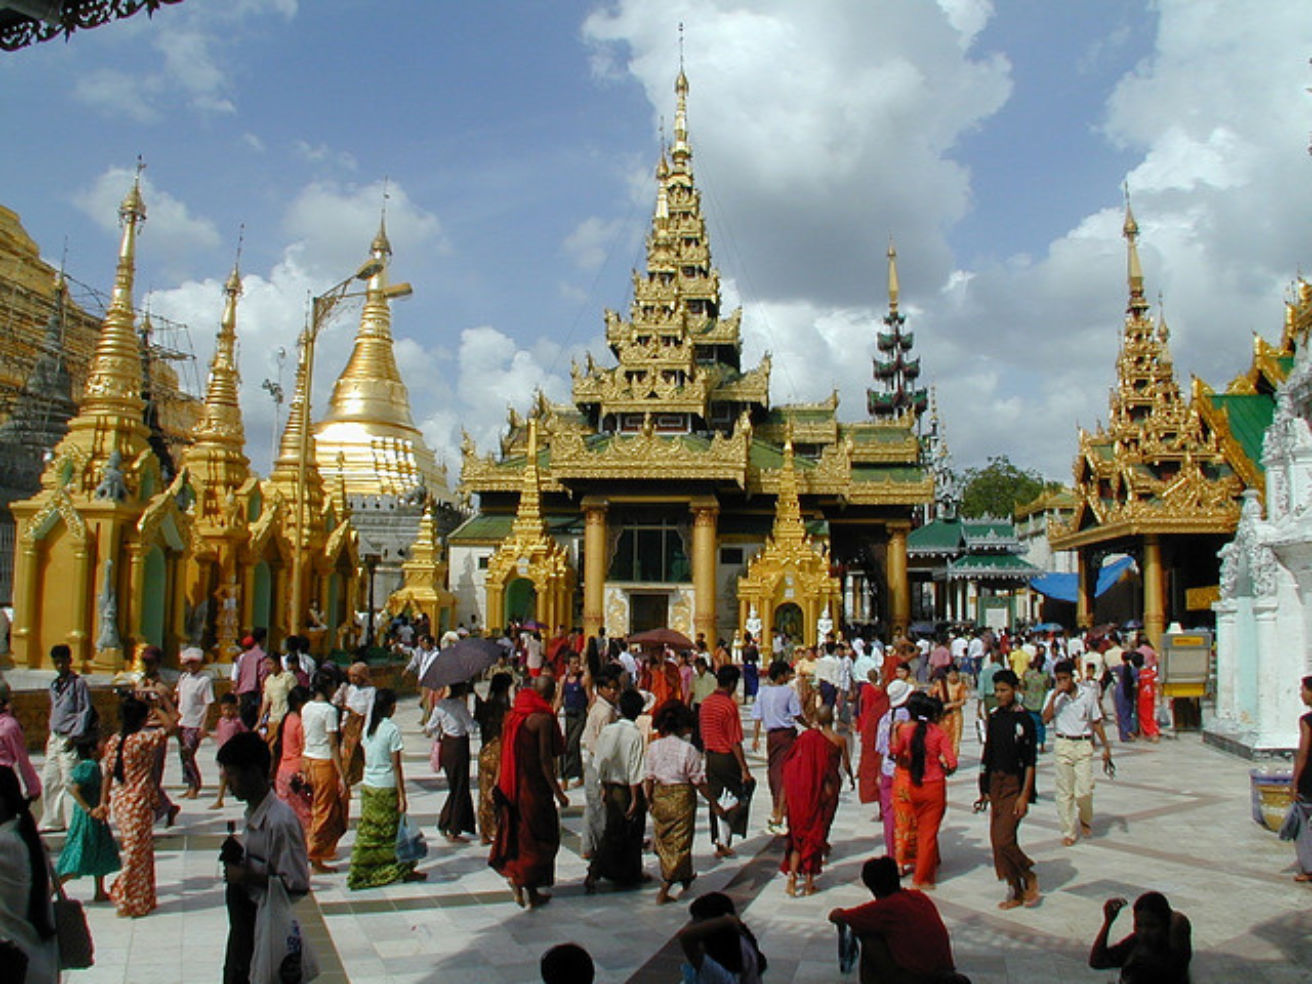 The Swedagon Pagoda in Burma, Myanmar